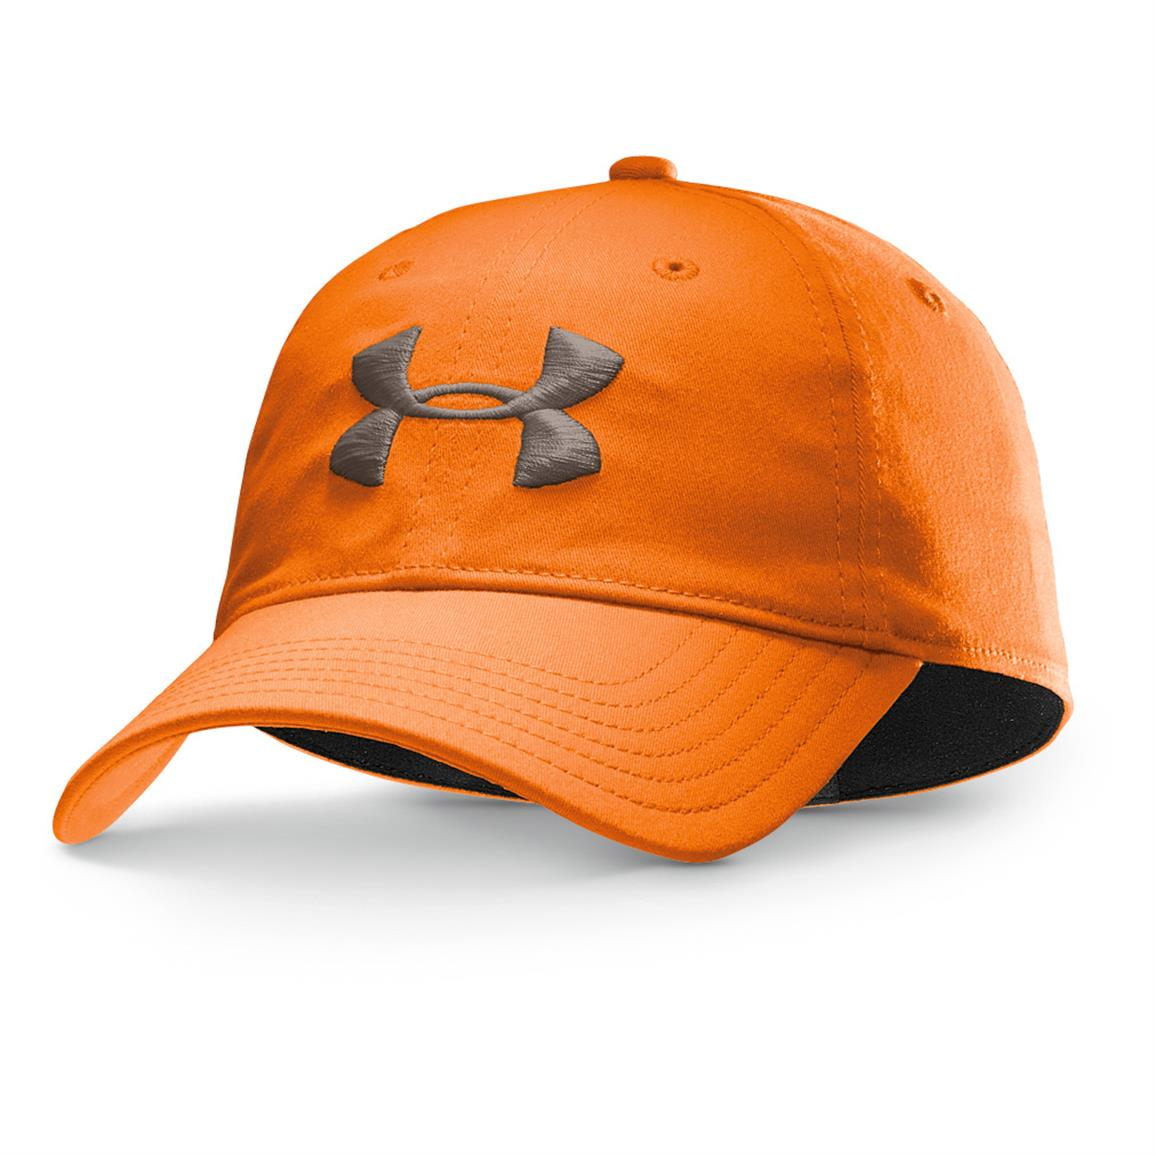 Under Armour Classic Outdoor Hat, Blaze